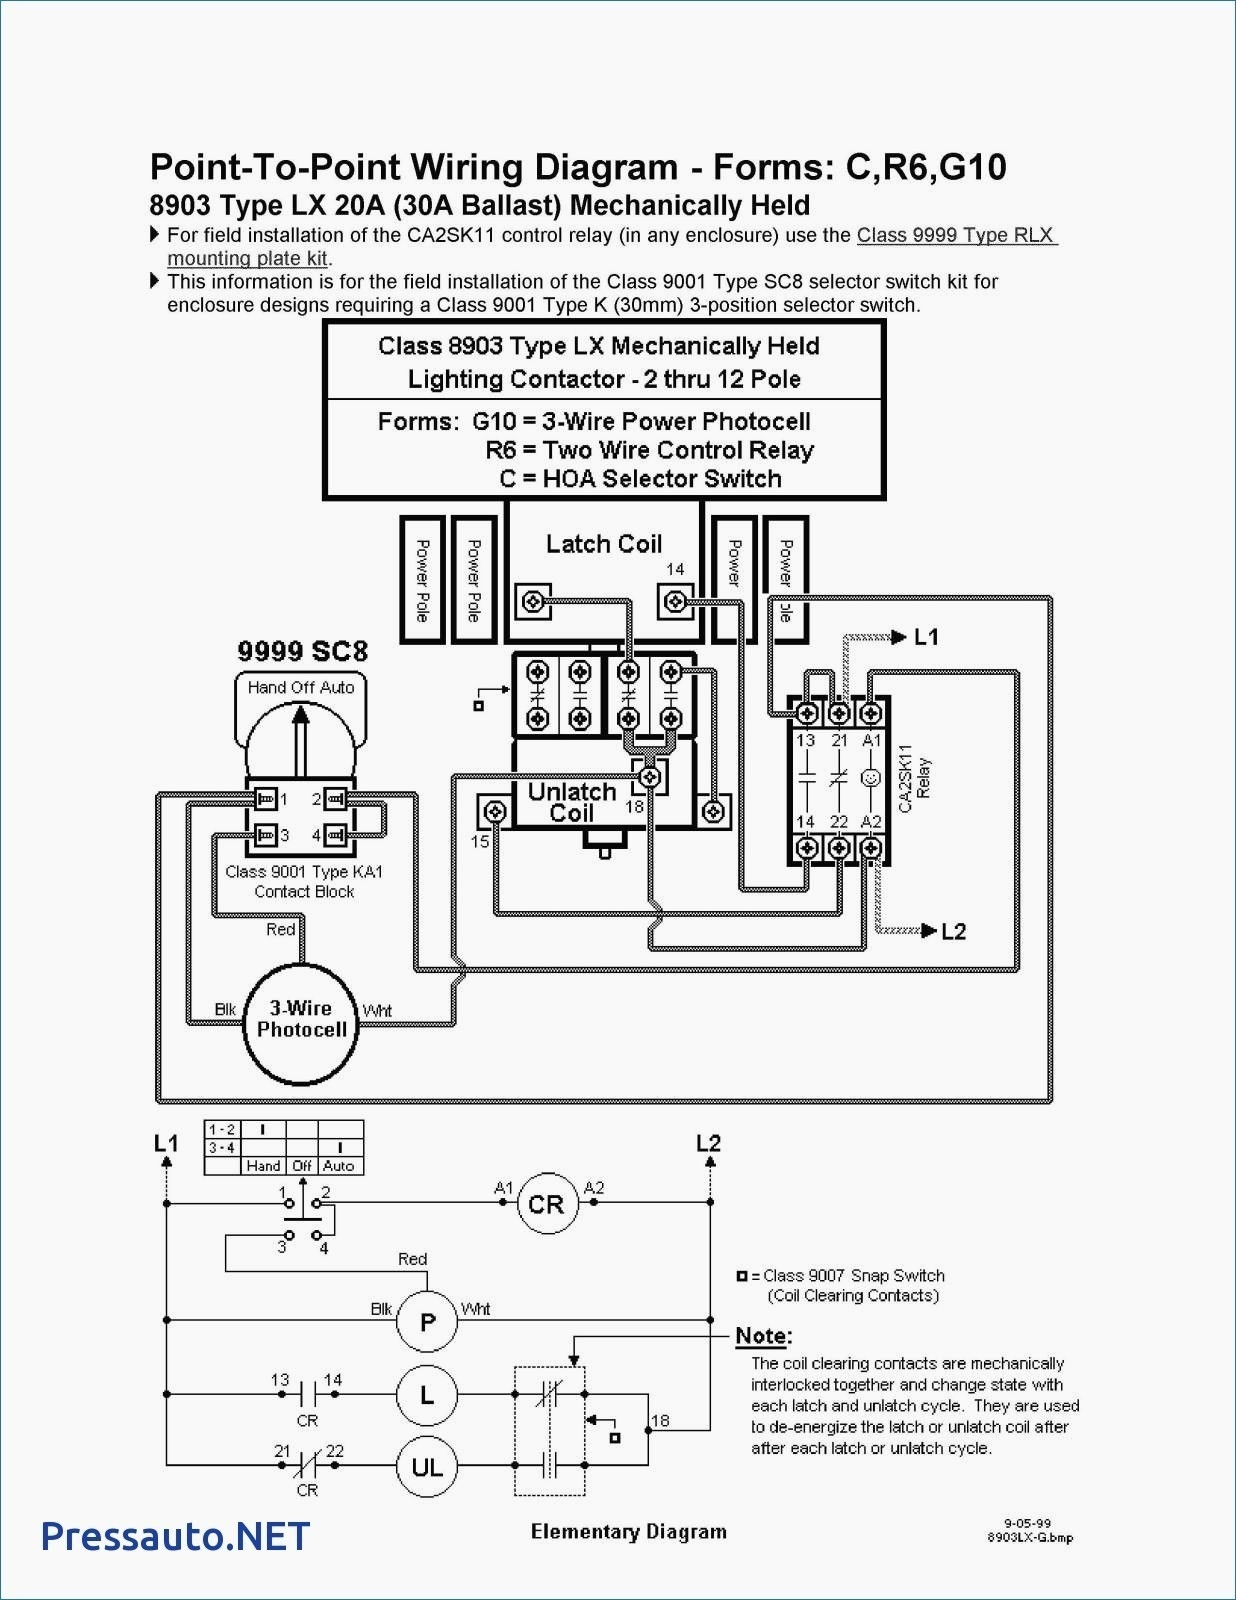 ge dc contactor wiring diagram free download eaton lighting contactor wiring diagram | free wiring diagram dc welder wiring diagram free download schematic